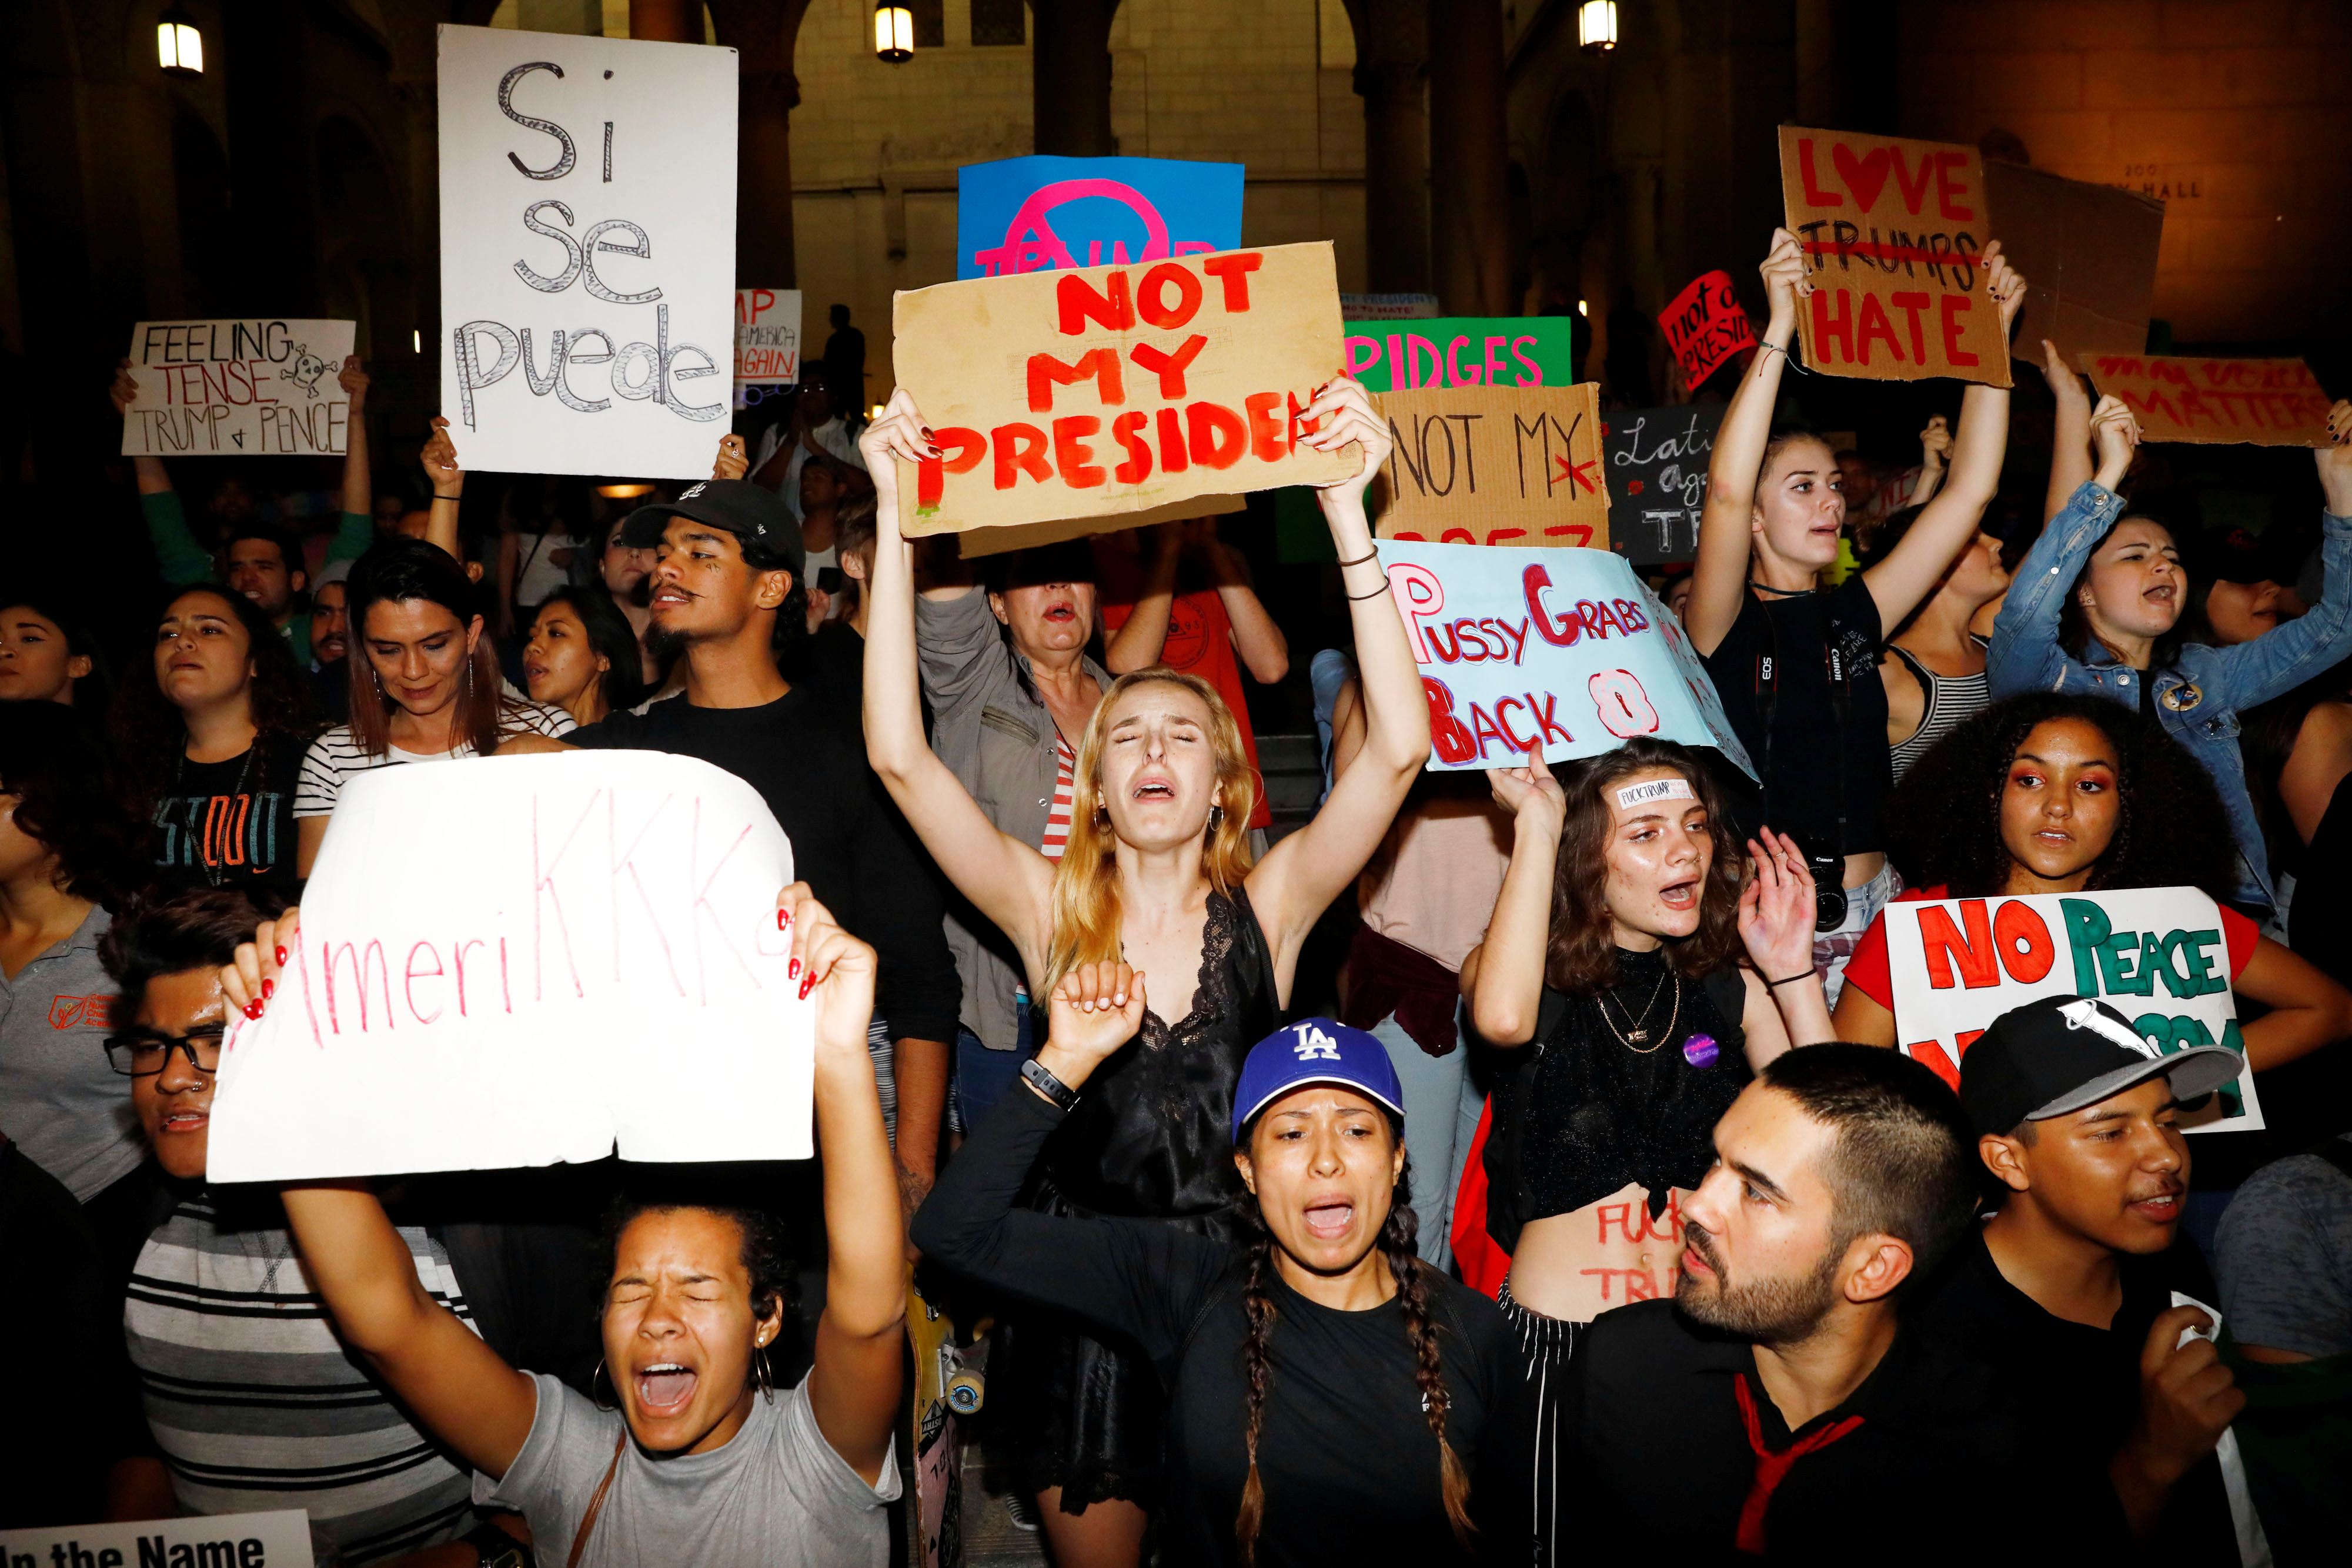 Demonstrators protest outside of City Hall following the election of Republican Donald Trump as President of the United States in downtown Los Angeles, California